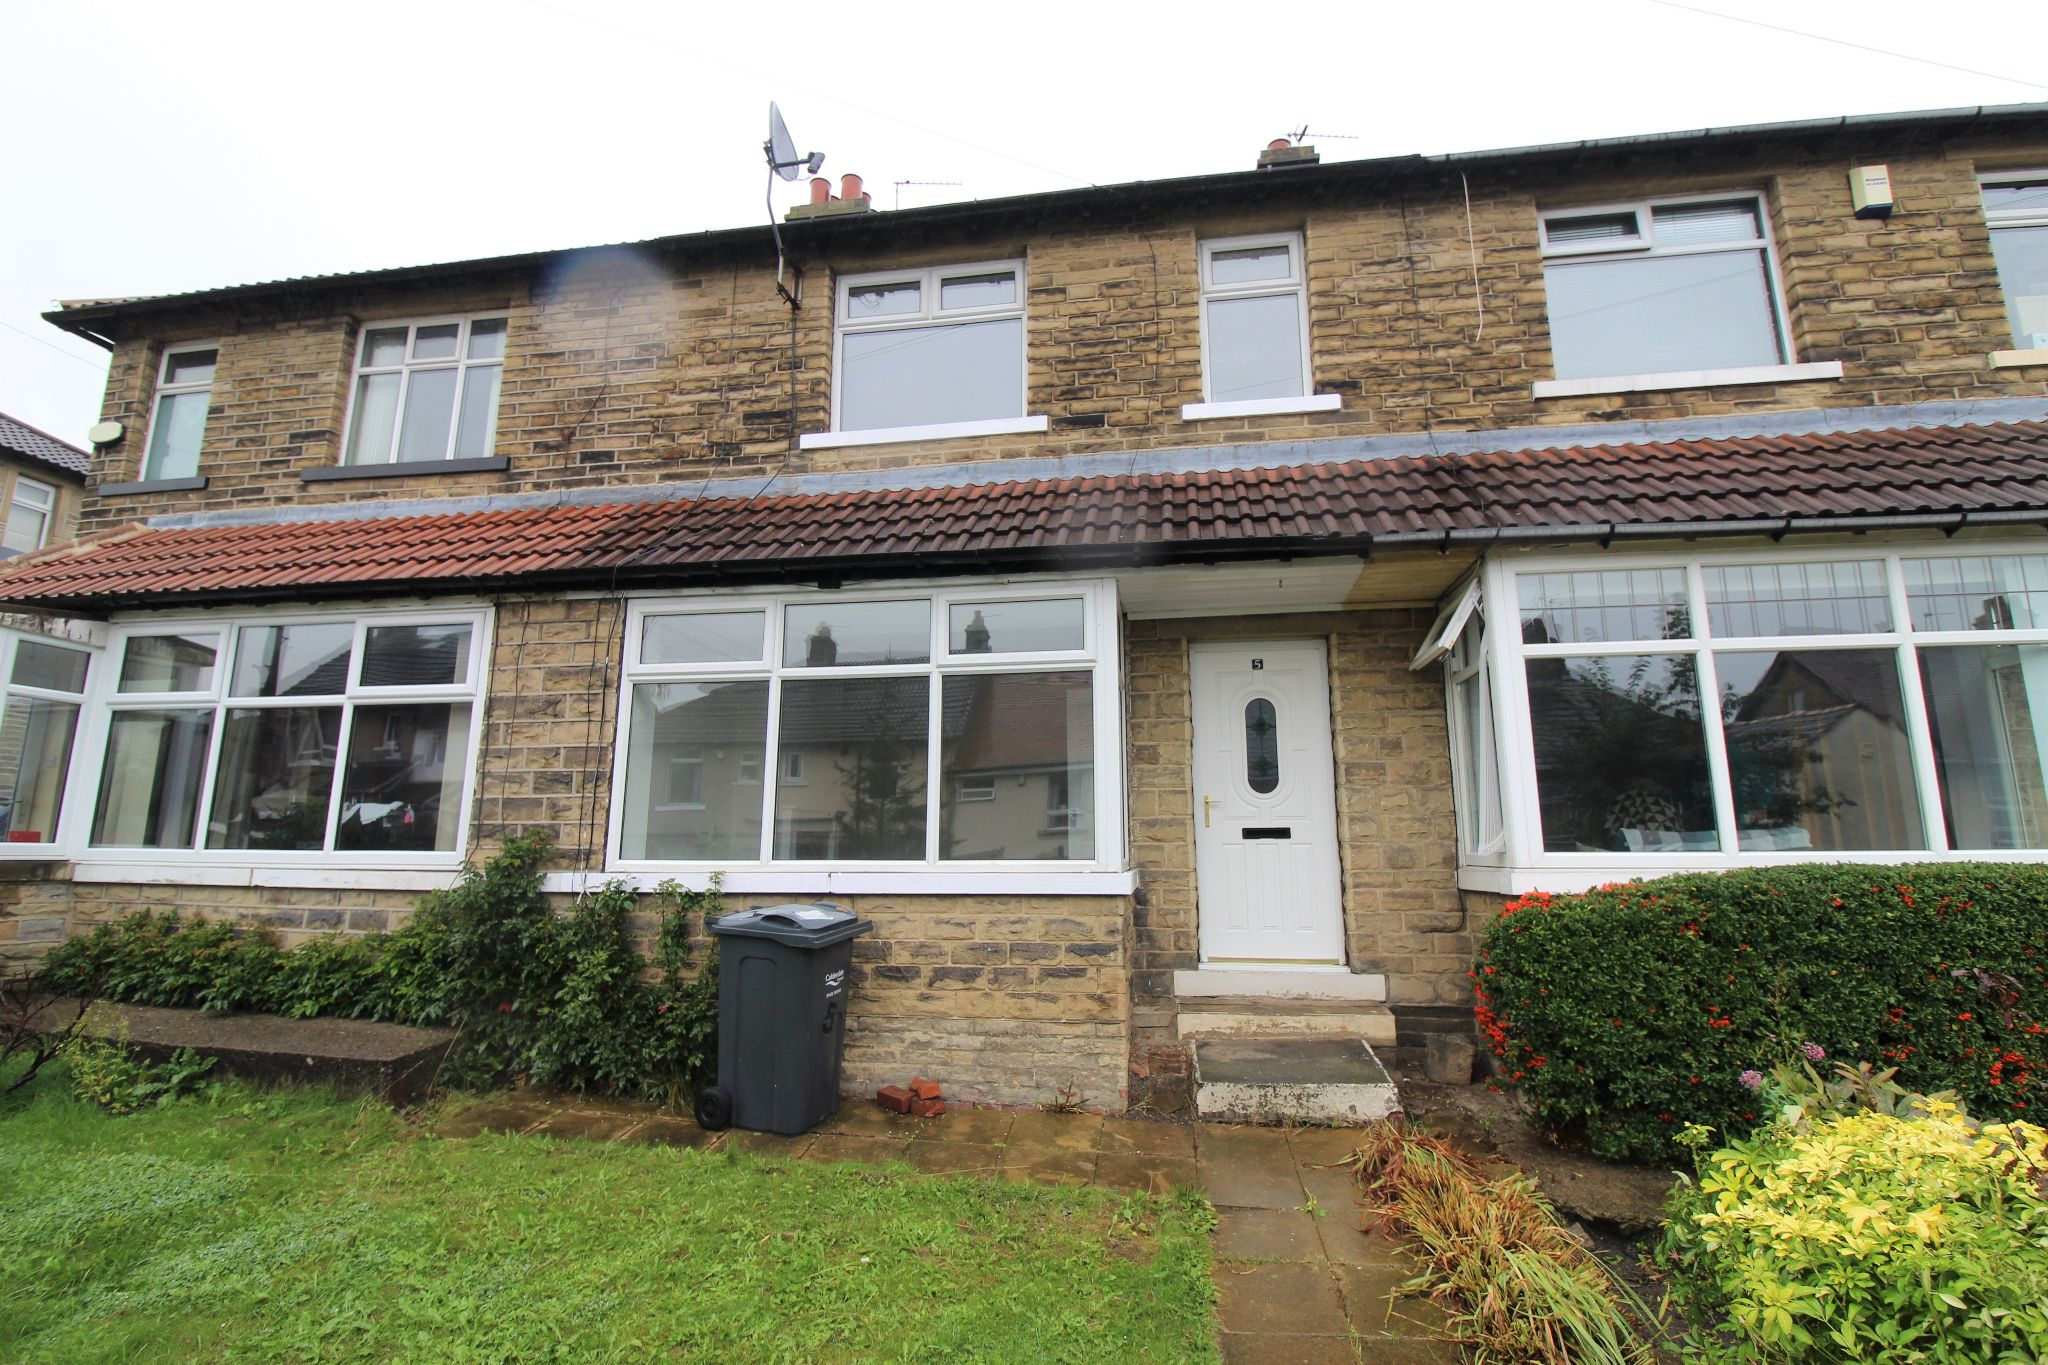 2 bedroom mid terraced house Let in Brighouse - Photograph 10